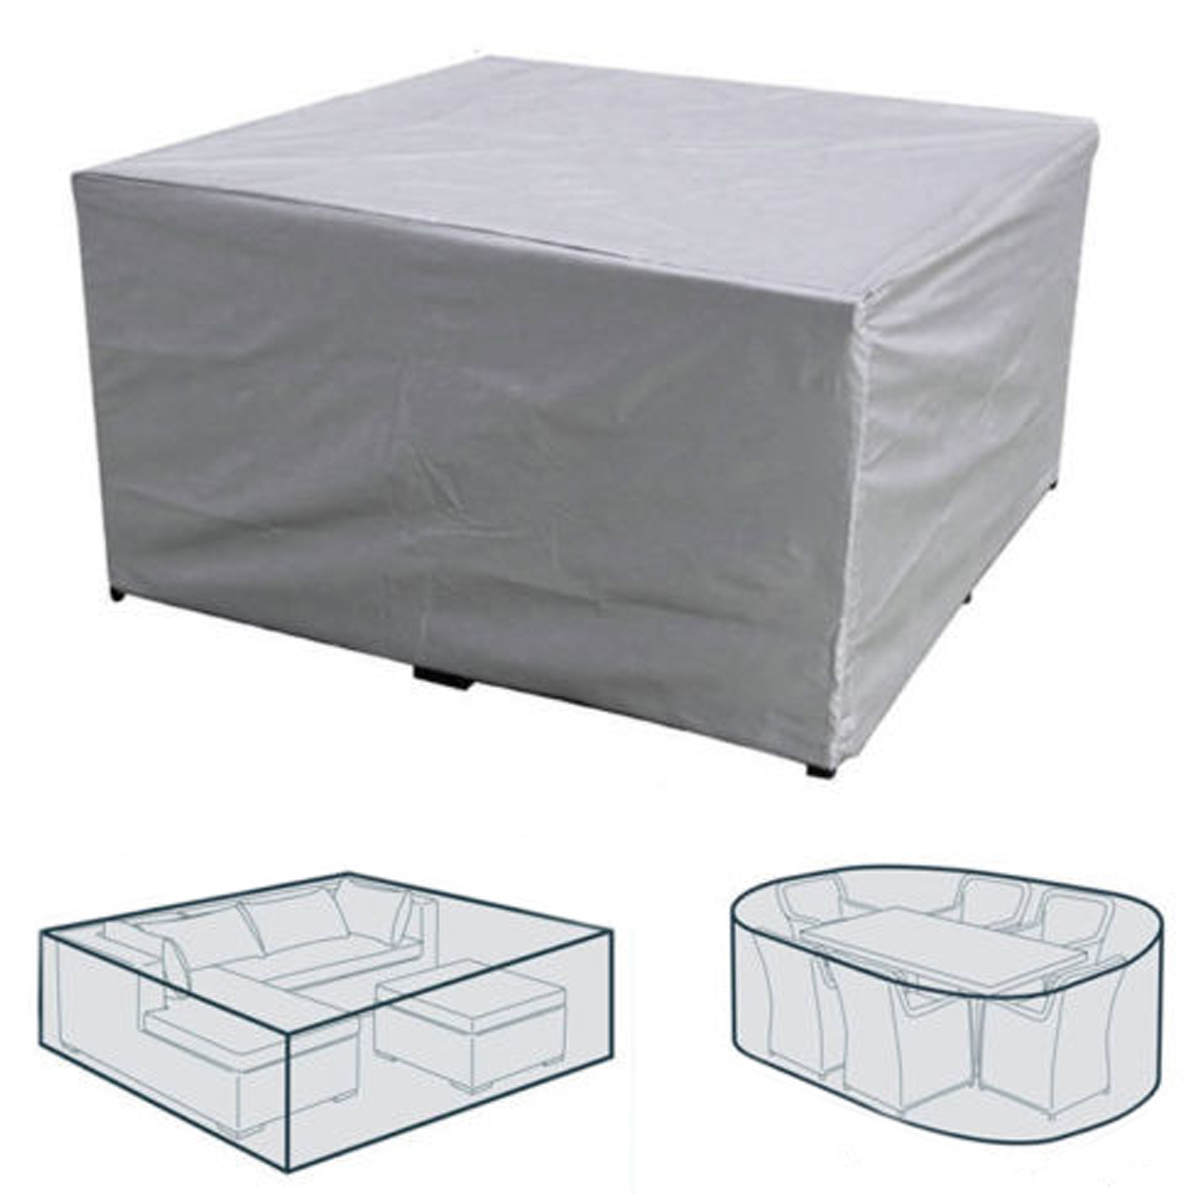 7 Sizes Waterproof Outdoor Patio Garden Furniture Rain Snow Chair covers for Sofa Table  ...